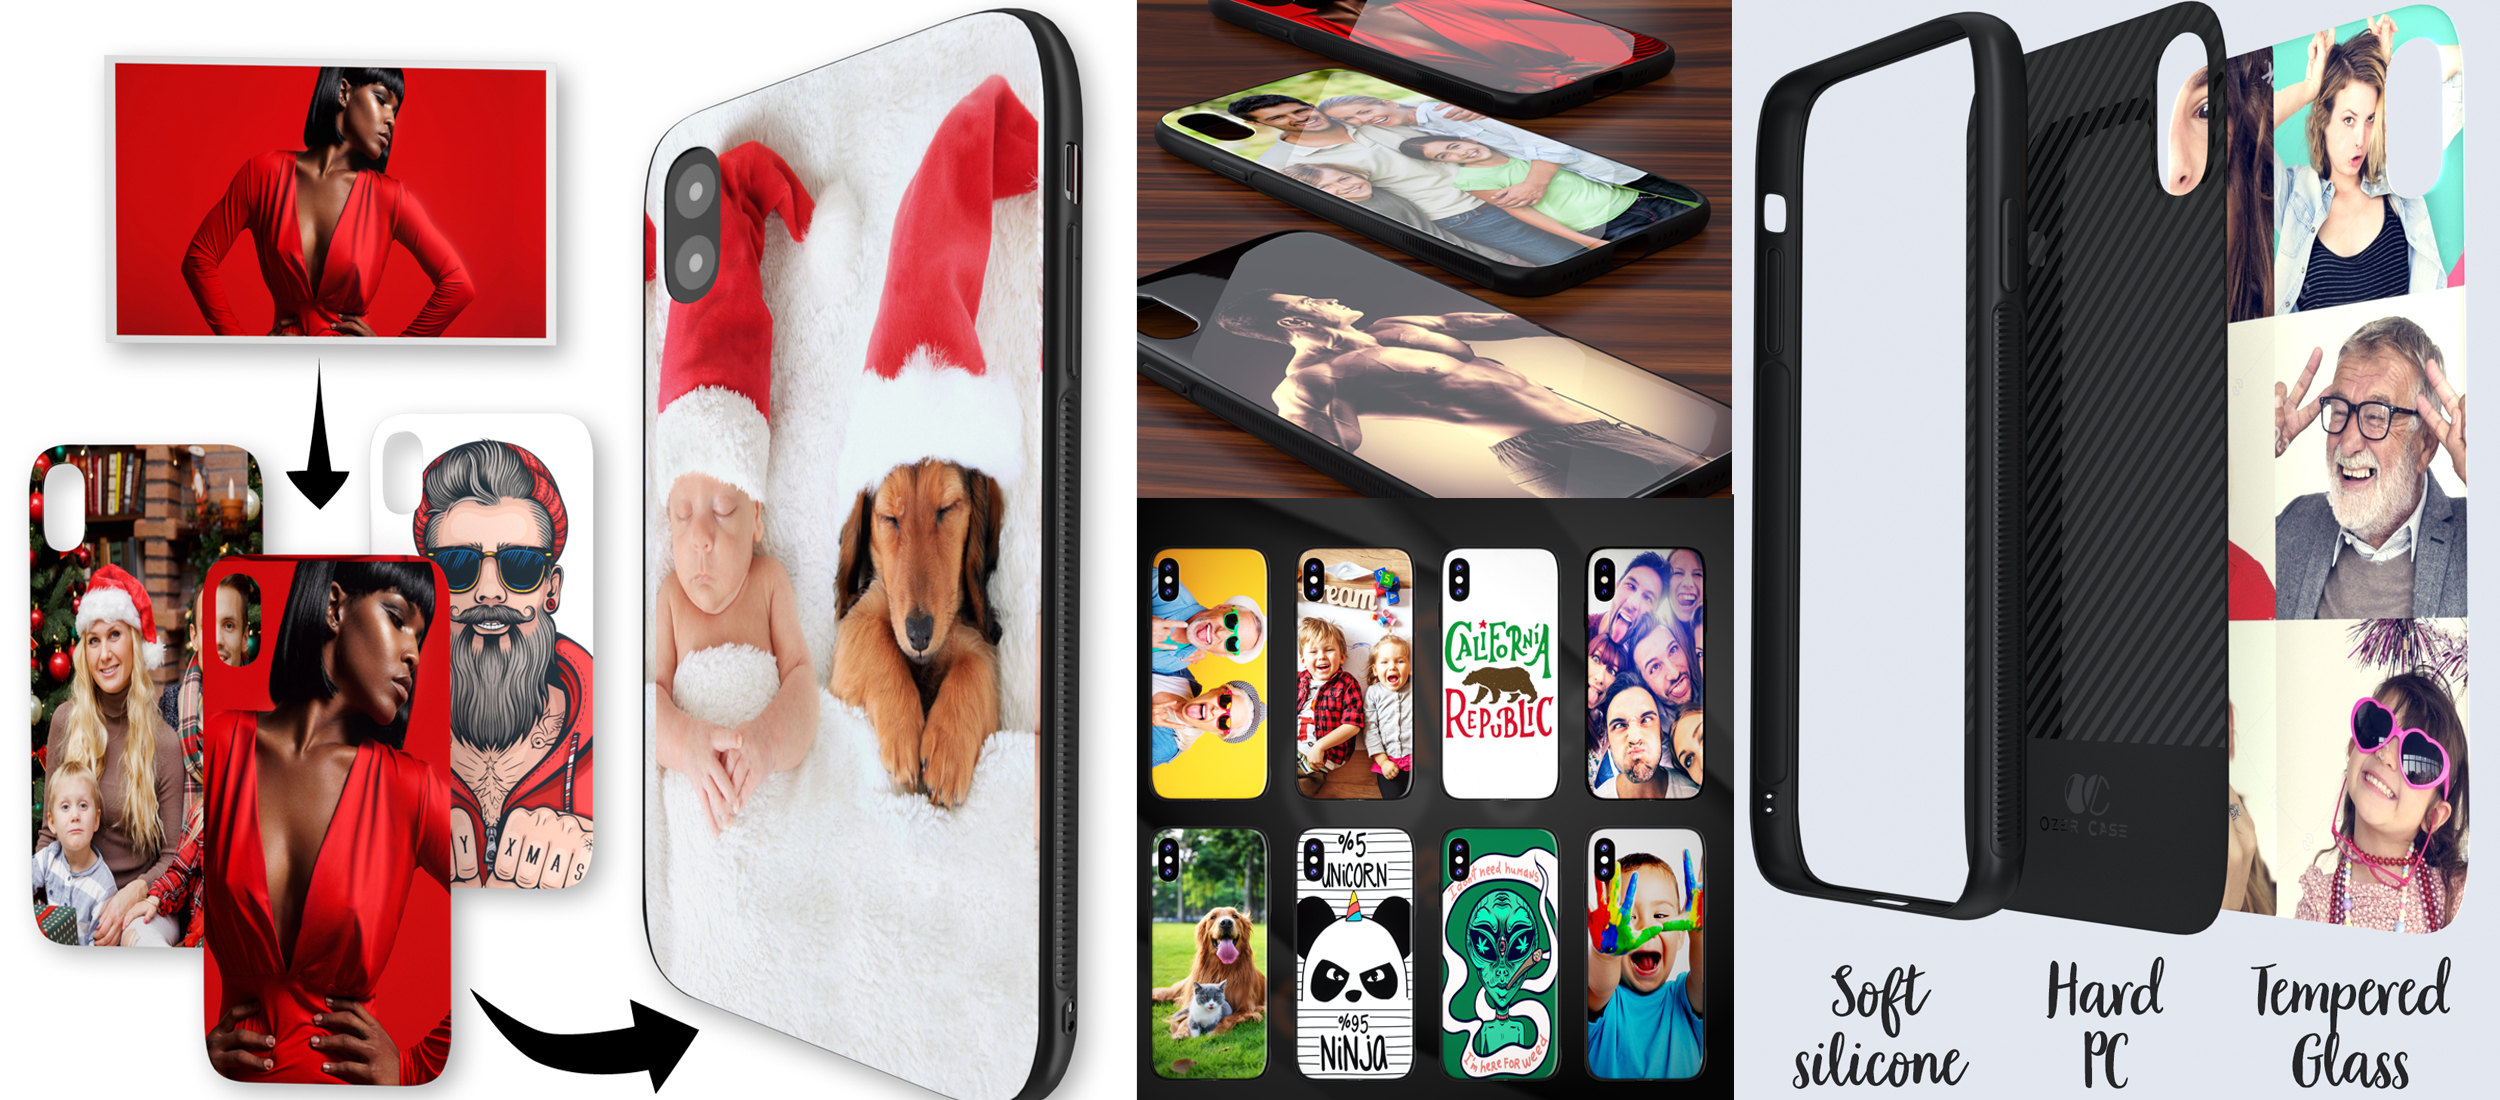 Ozer Case Offers Fully Customizable iPhone Cases That Hits the Mark on All Points